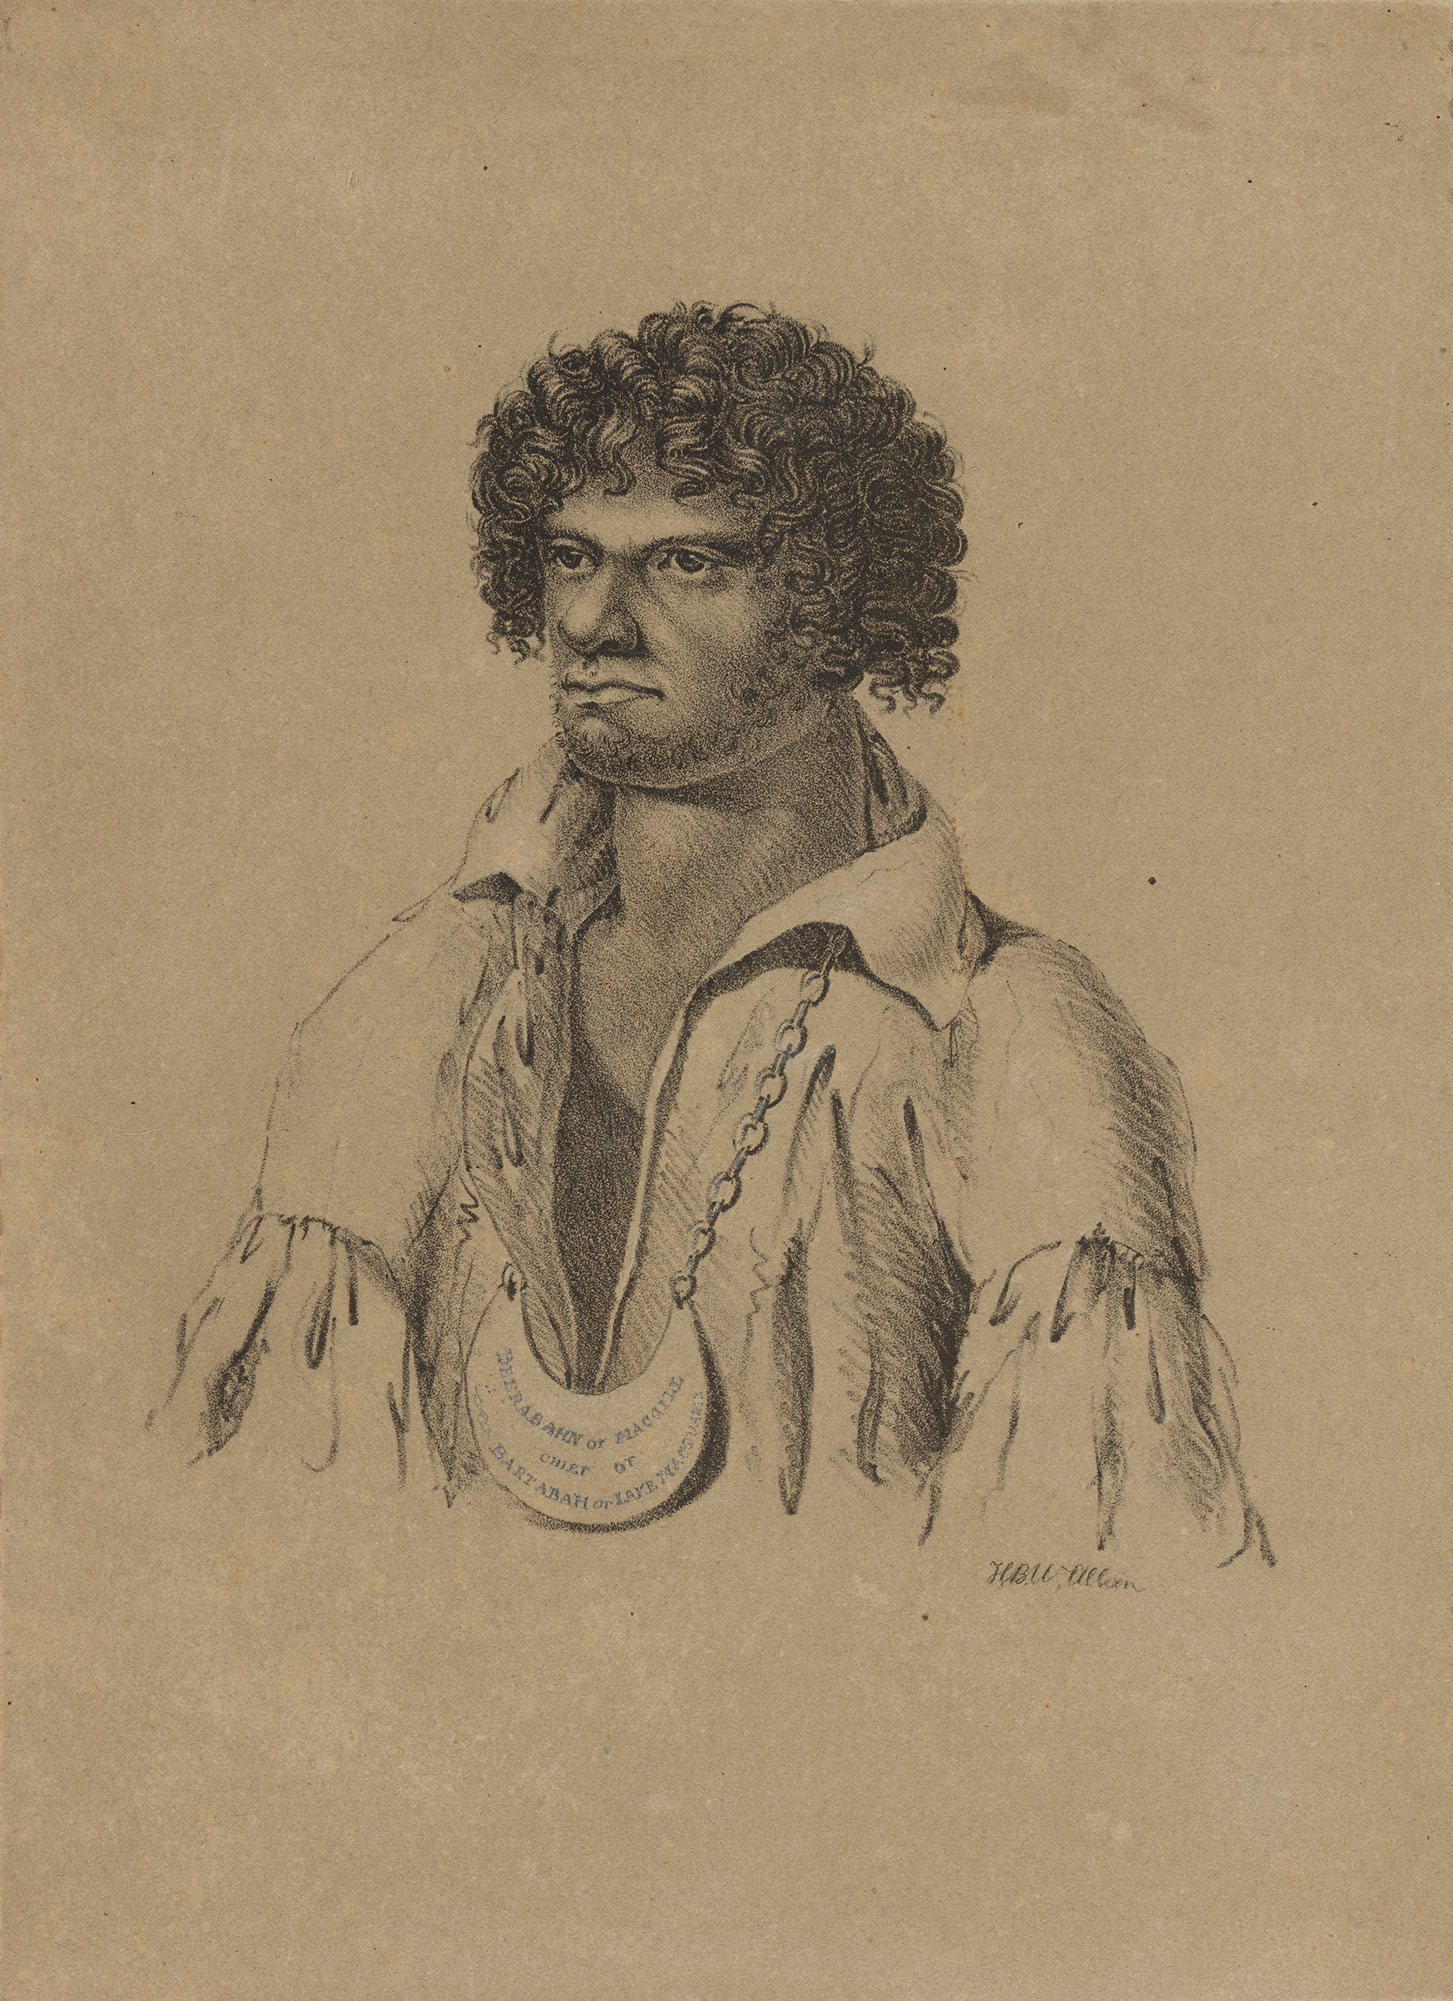 A sketch portrait of an Aboriginal man.